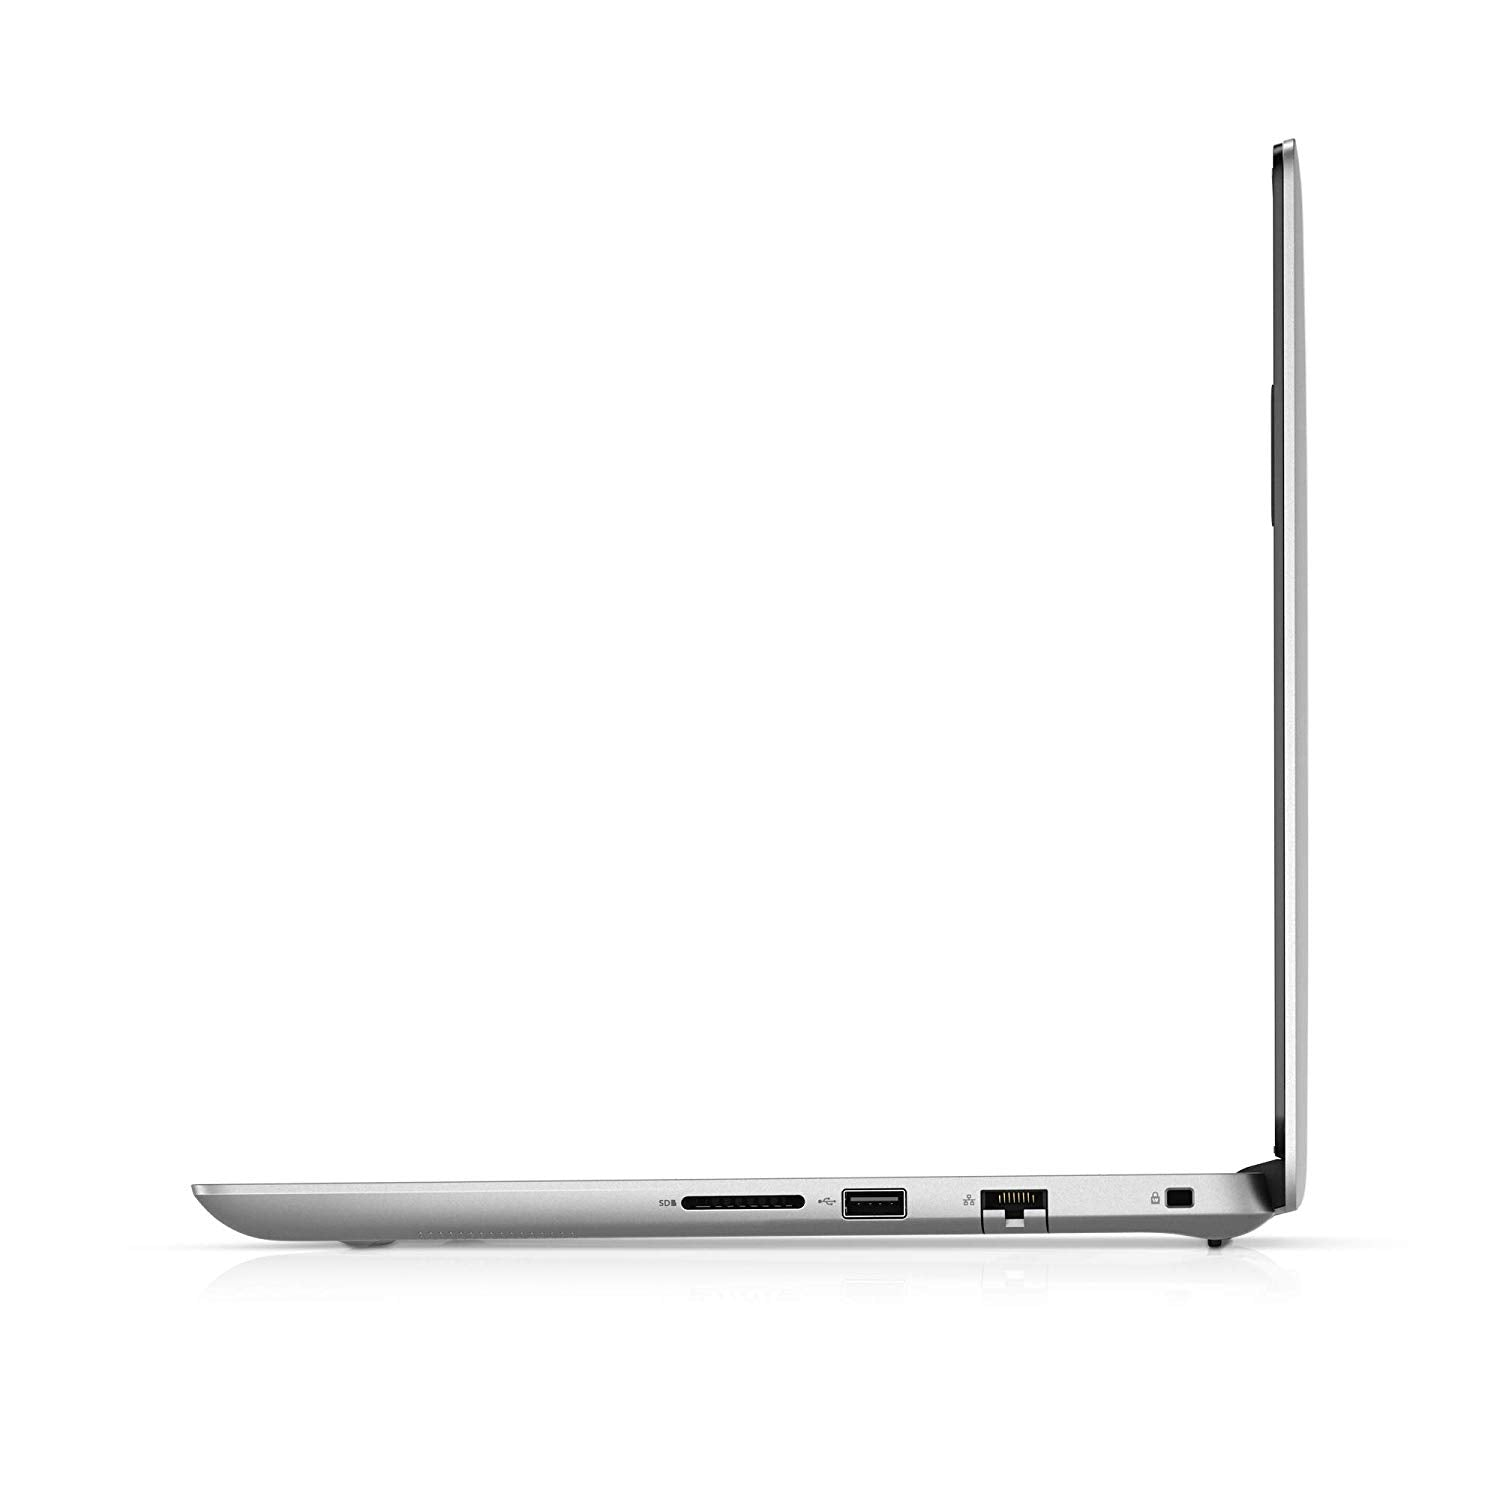 "Dell Inspiron 14 5485 i5485-A186SLV-PUS Laptop (Windows 10 Home, AMD Ryzen(Tm) 3 3200U, 14"" LED Screen, Storage: 128 GB, RAM: 4 GB) Silver"